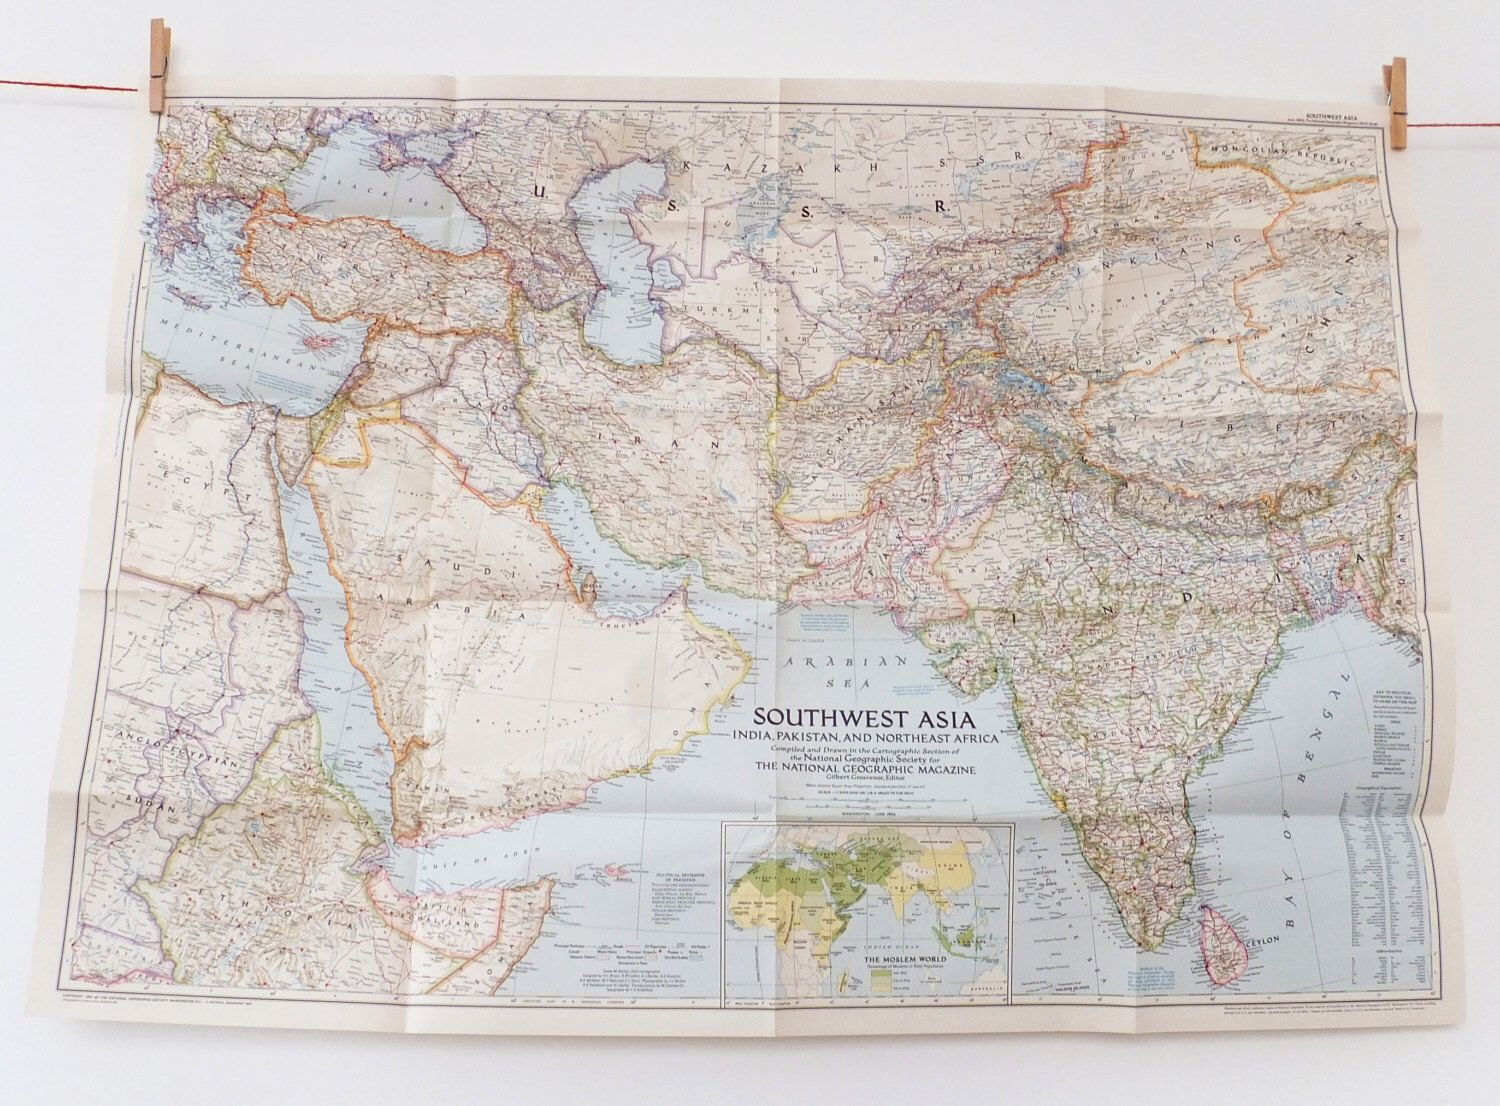 Southwest asia map national geographic map 1952 pakistan north southwest asia map national geographic map 1952 pakistan north east africa sciox Images